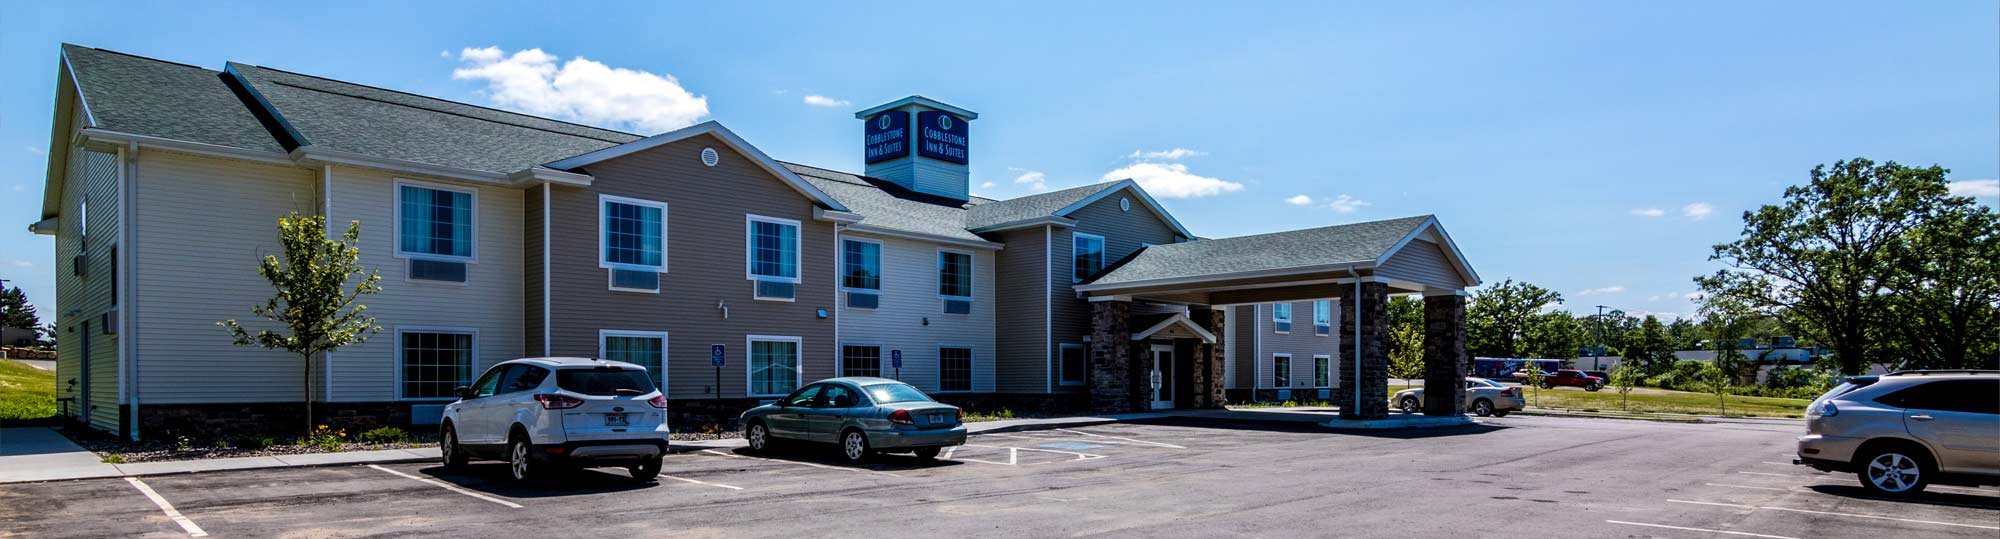 Cobblestone Inn and Suites Barron